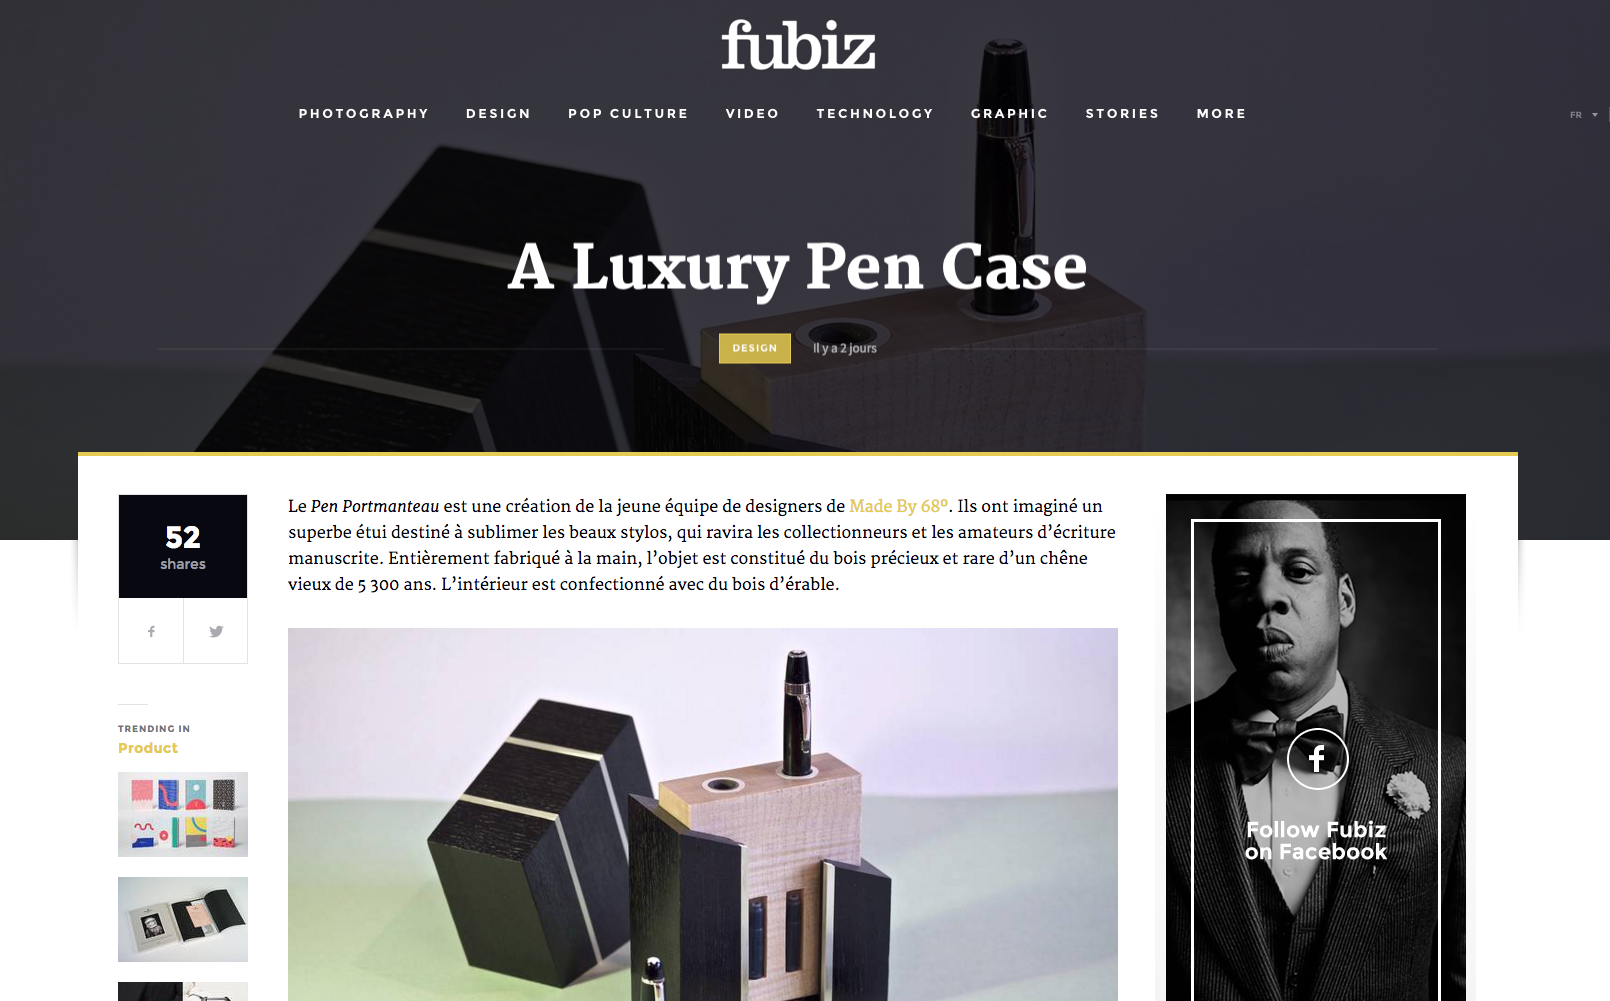 Fubiz website screen grab